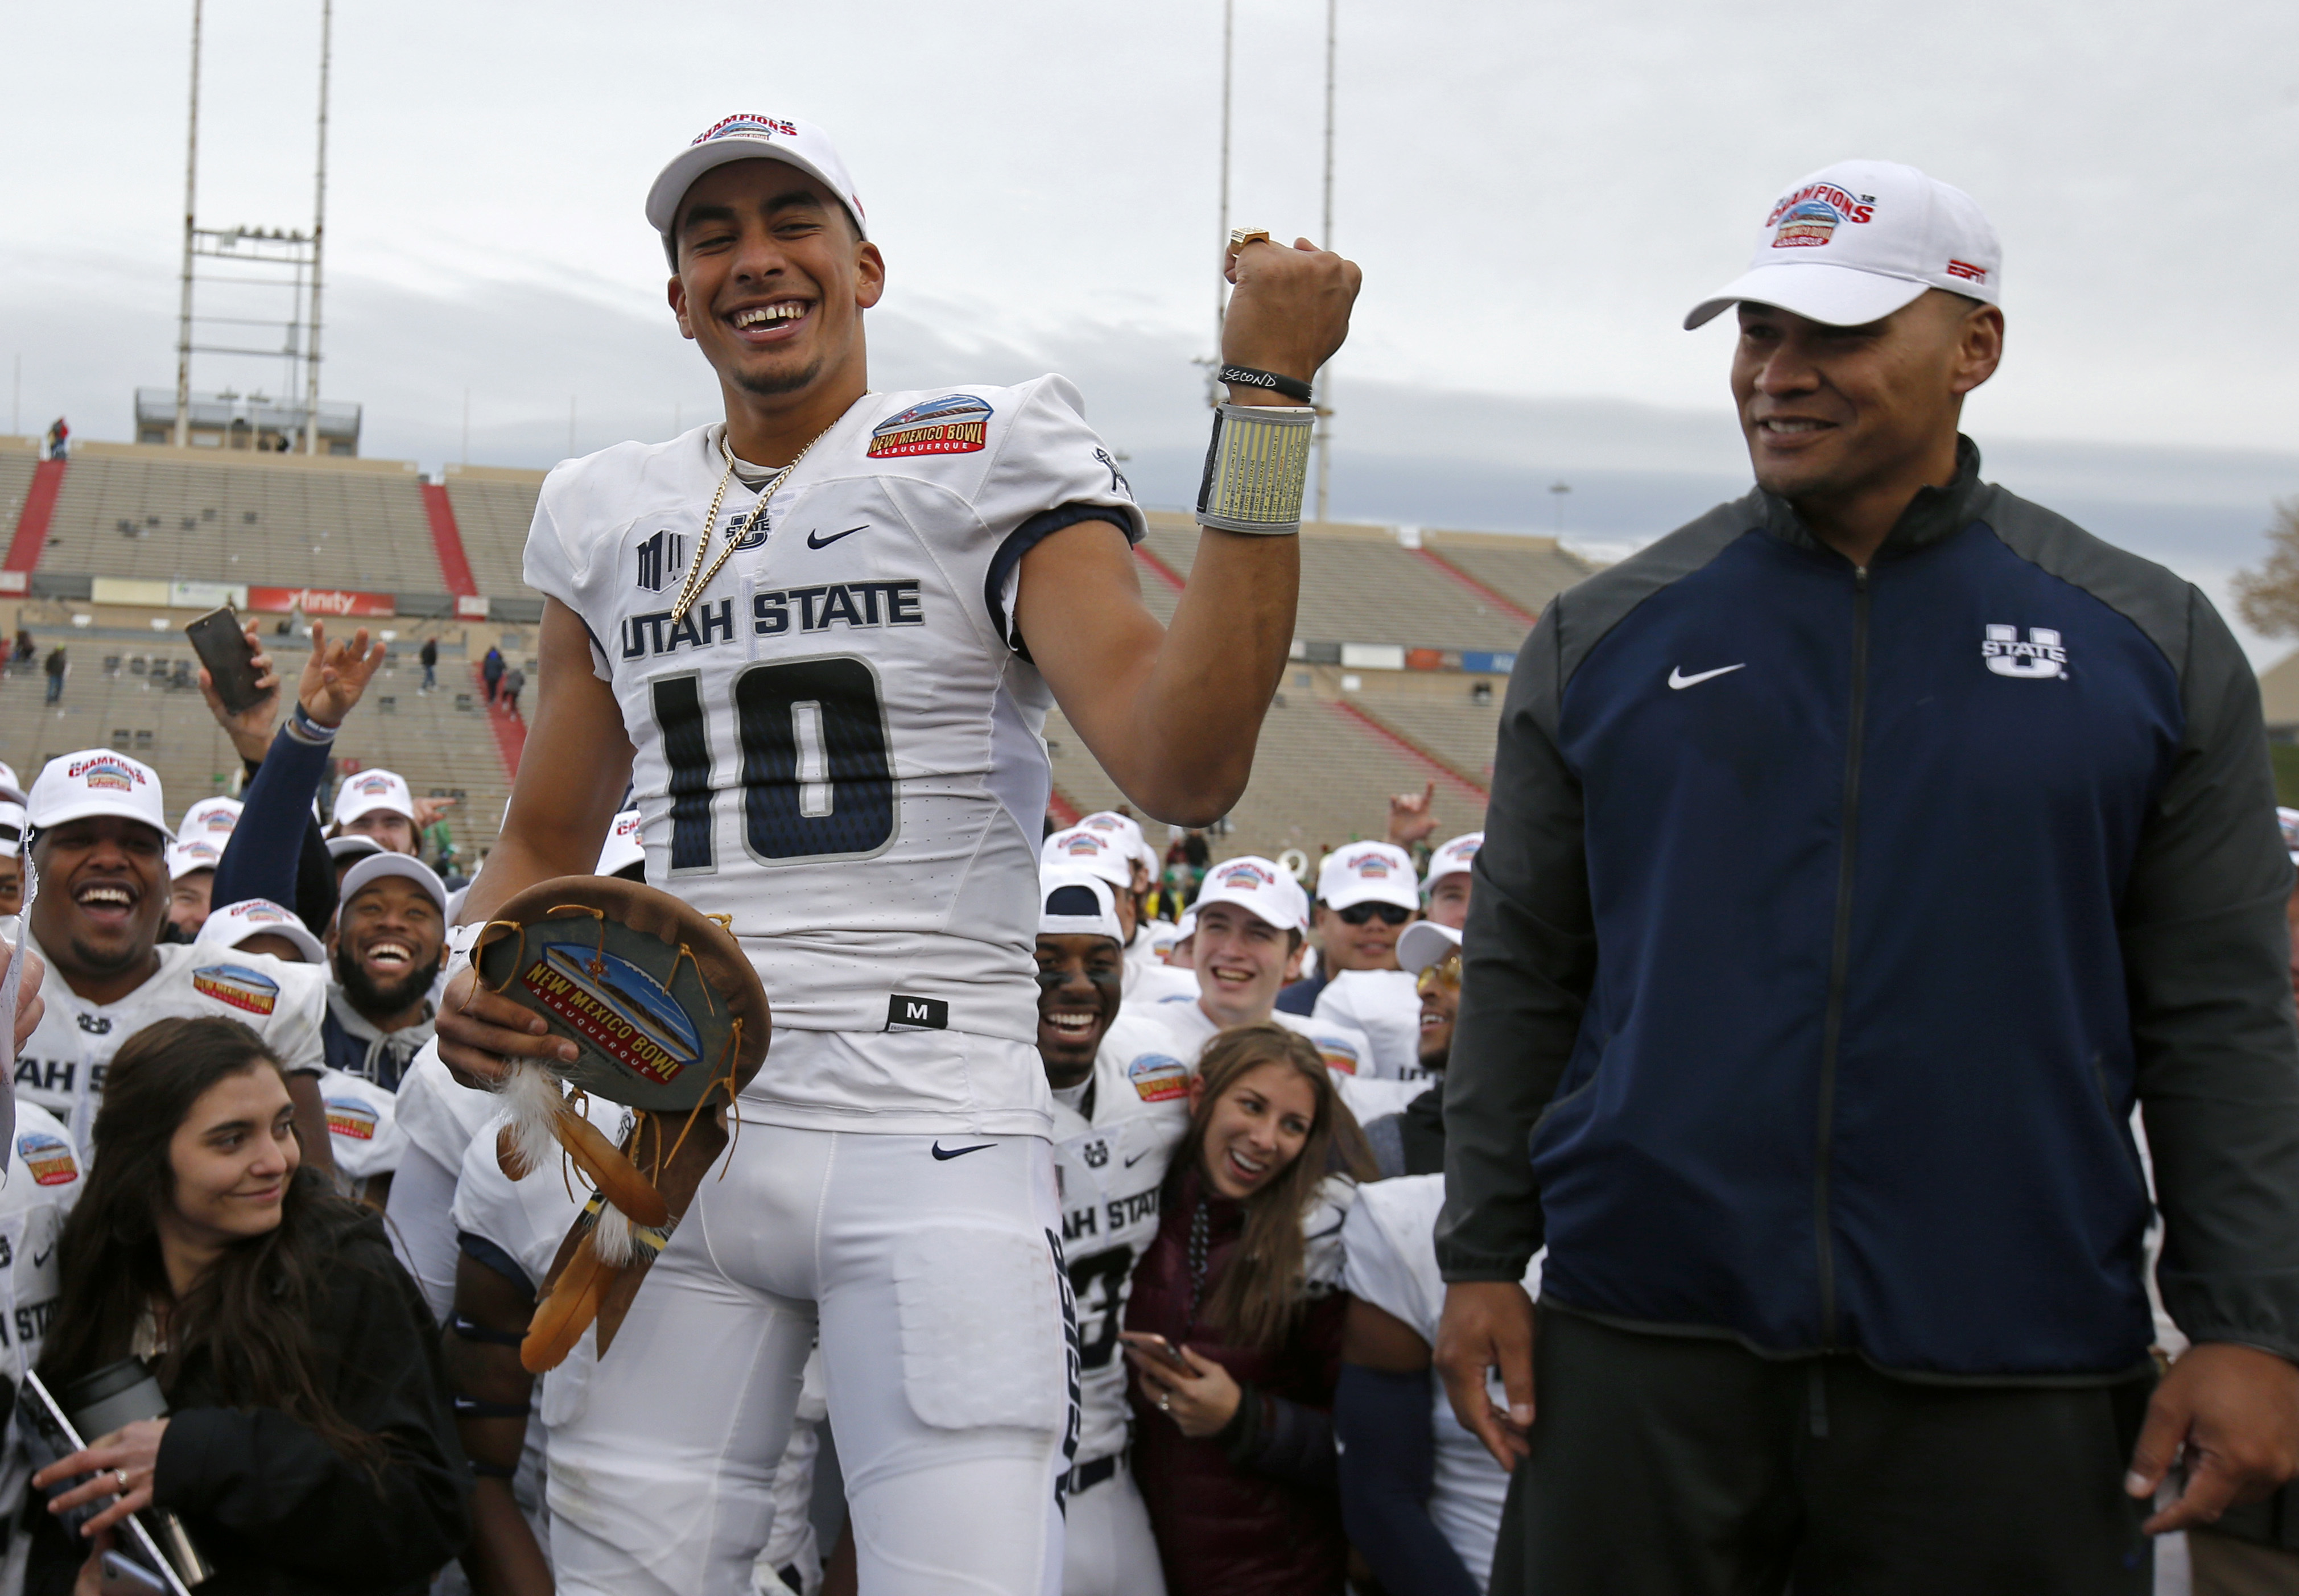 Utah State quarterback Jordan Love (10) celebrates after being named the Outstanding Offensive Player as interim head coach Frank Maile looks on, following the New Mexico Bowl NCAA college football game in Albuquerque, N.M., Saturday, Dec. 15, 2018. Utah